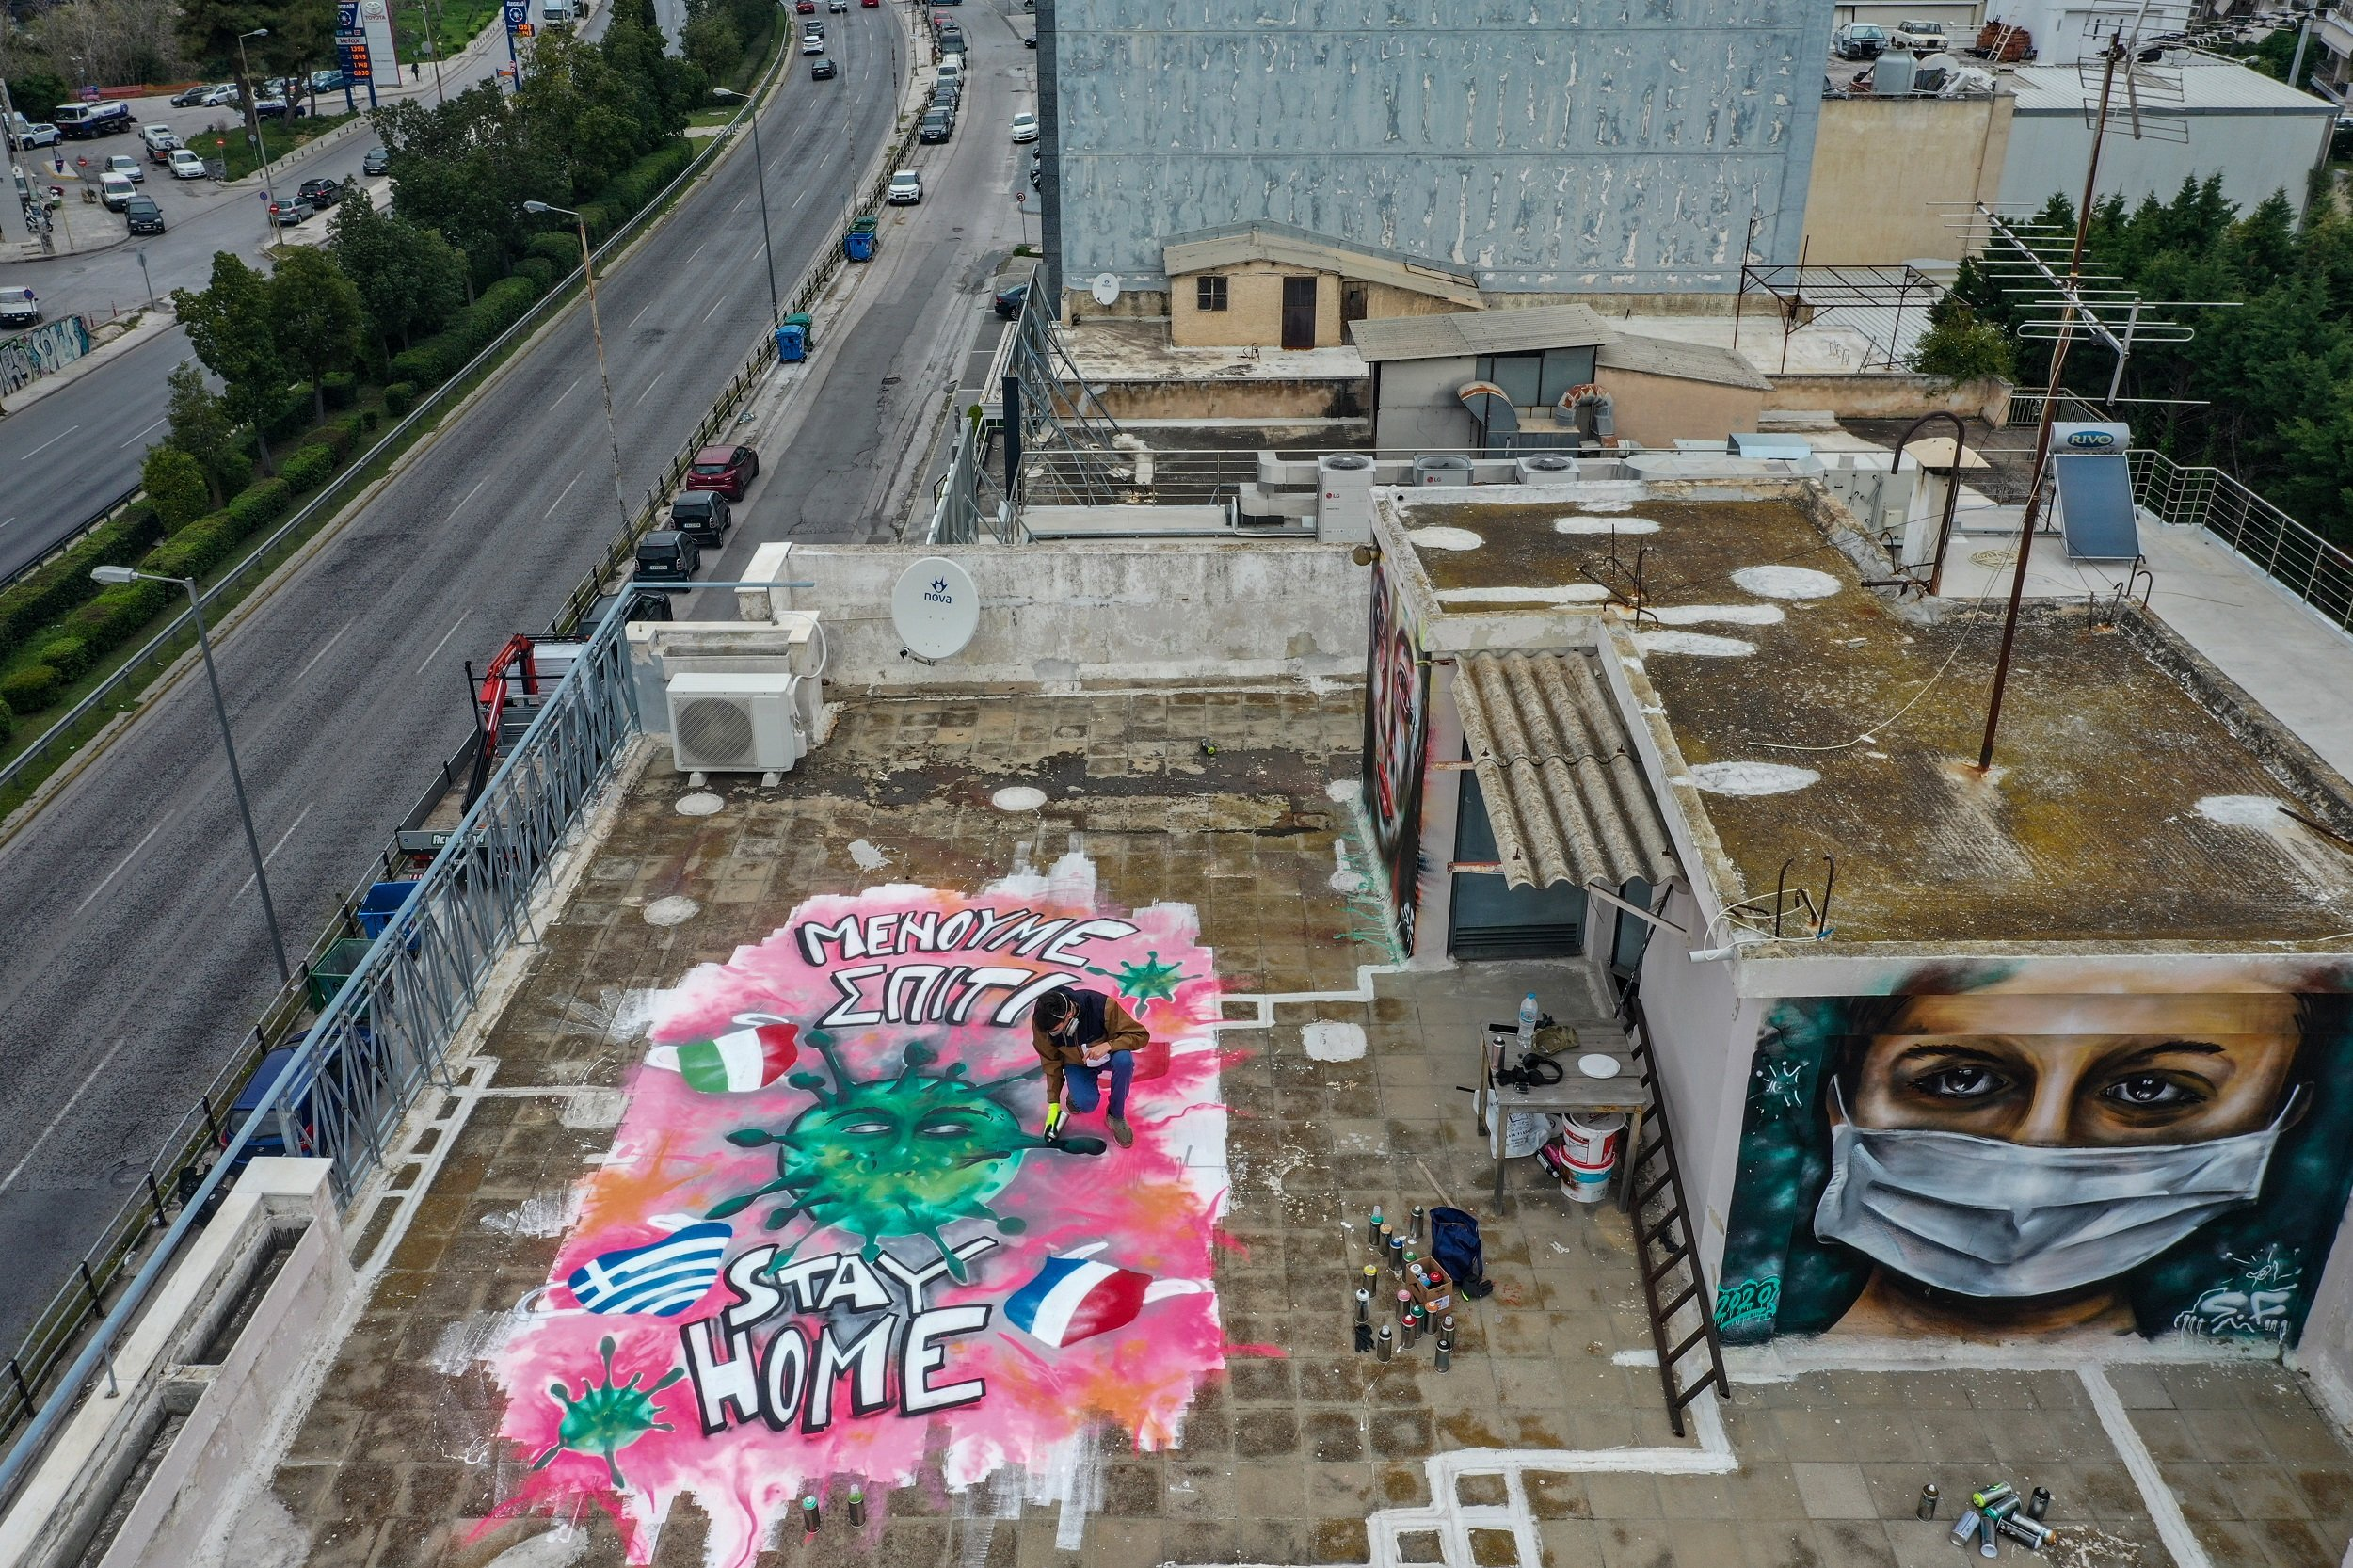 On the roof of his building, a Greek artist displays graffiti urging people to stay home and to wear a mask.